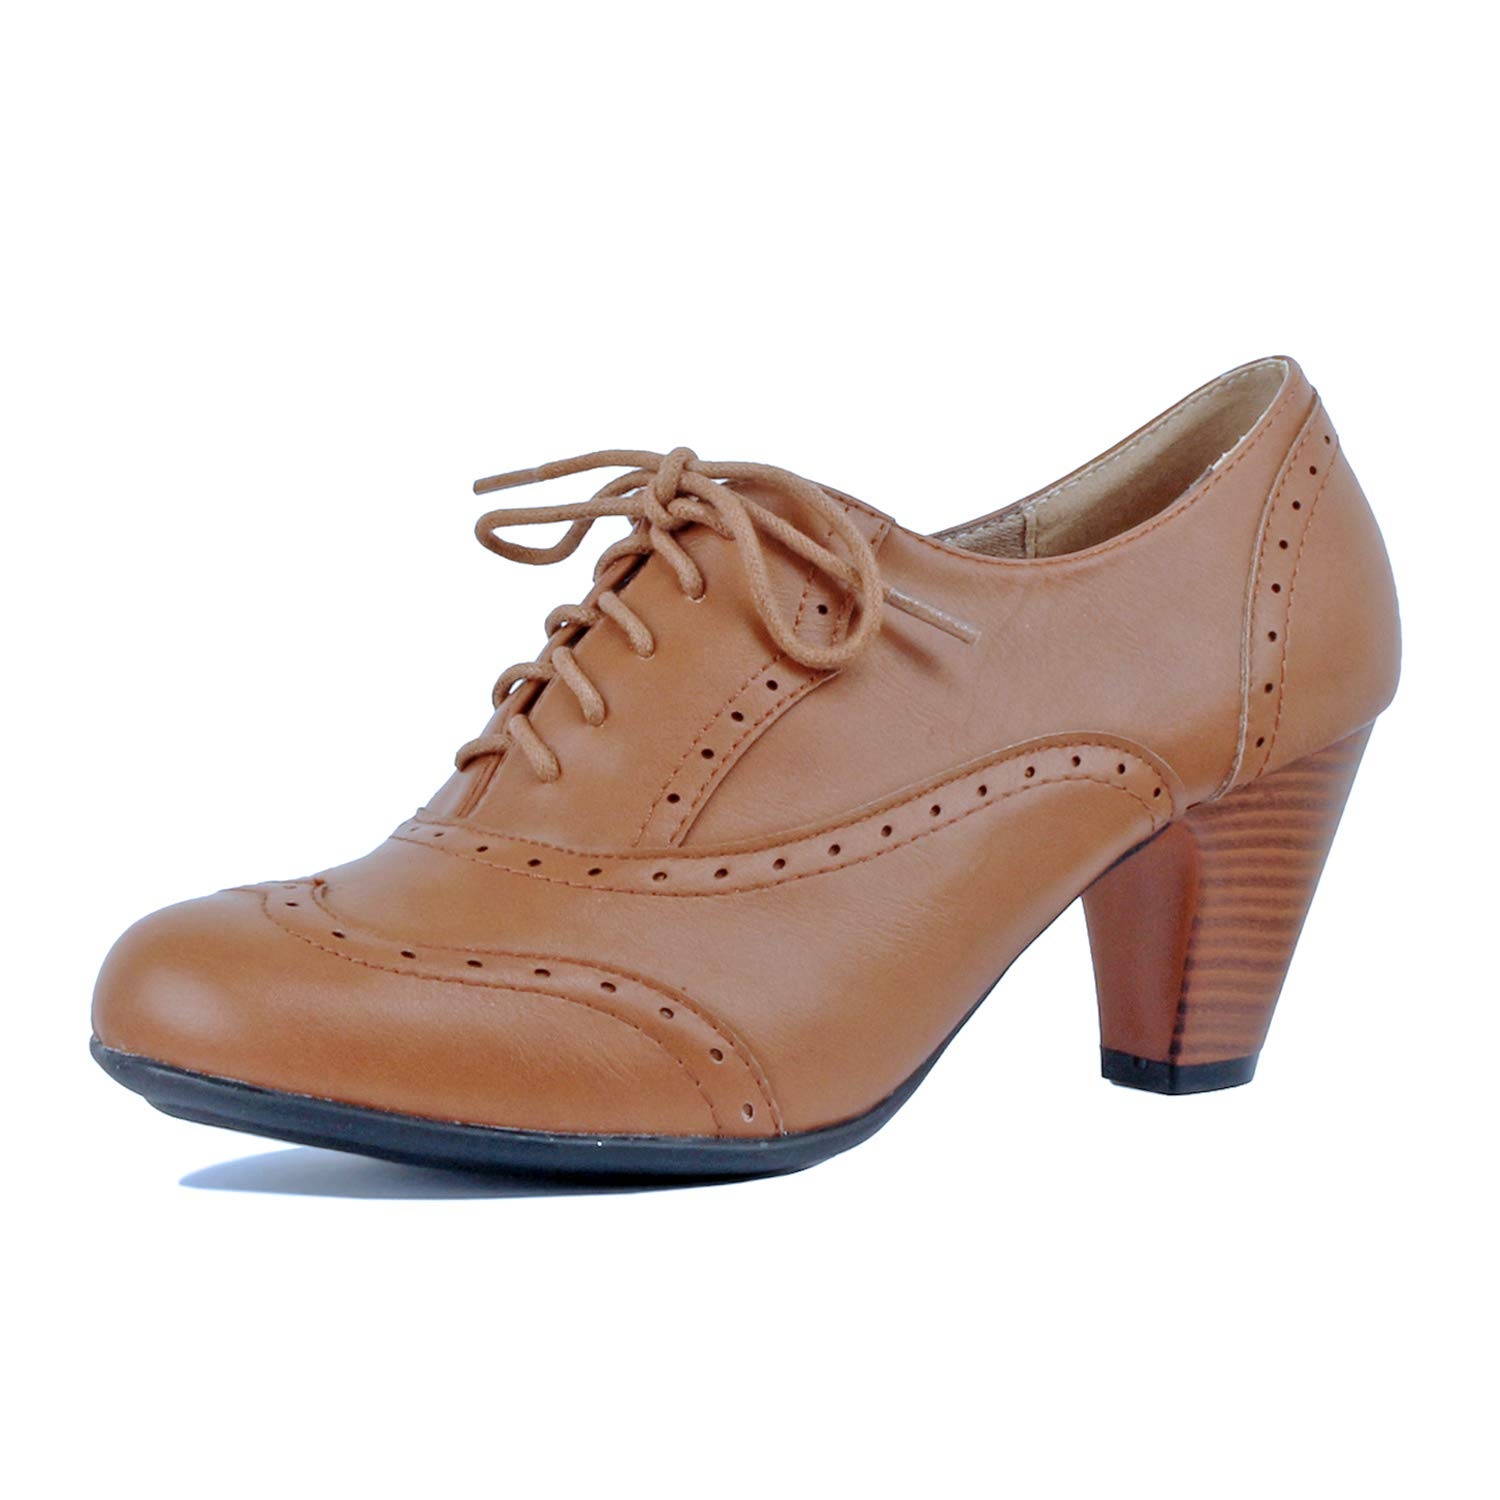 Guilty Shoes - Womens Classic Retro Two Tone Embroidery - Wing Tip Lace up Kitten Heel Oxford Pumps (6.5 B(M) US, Tanv3 Pu)